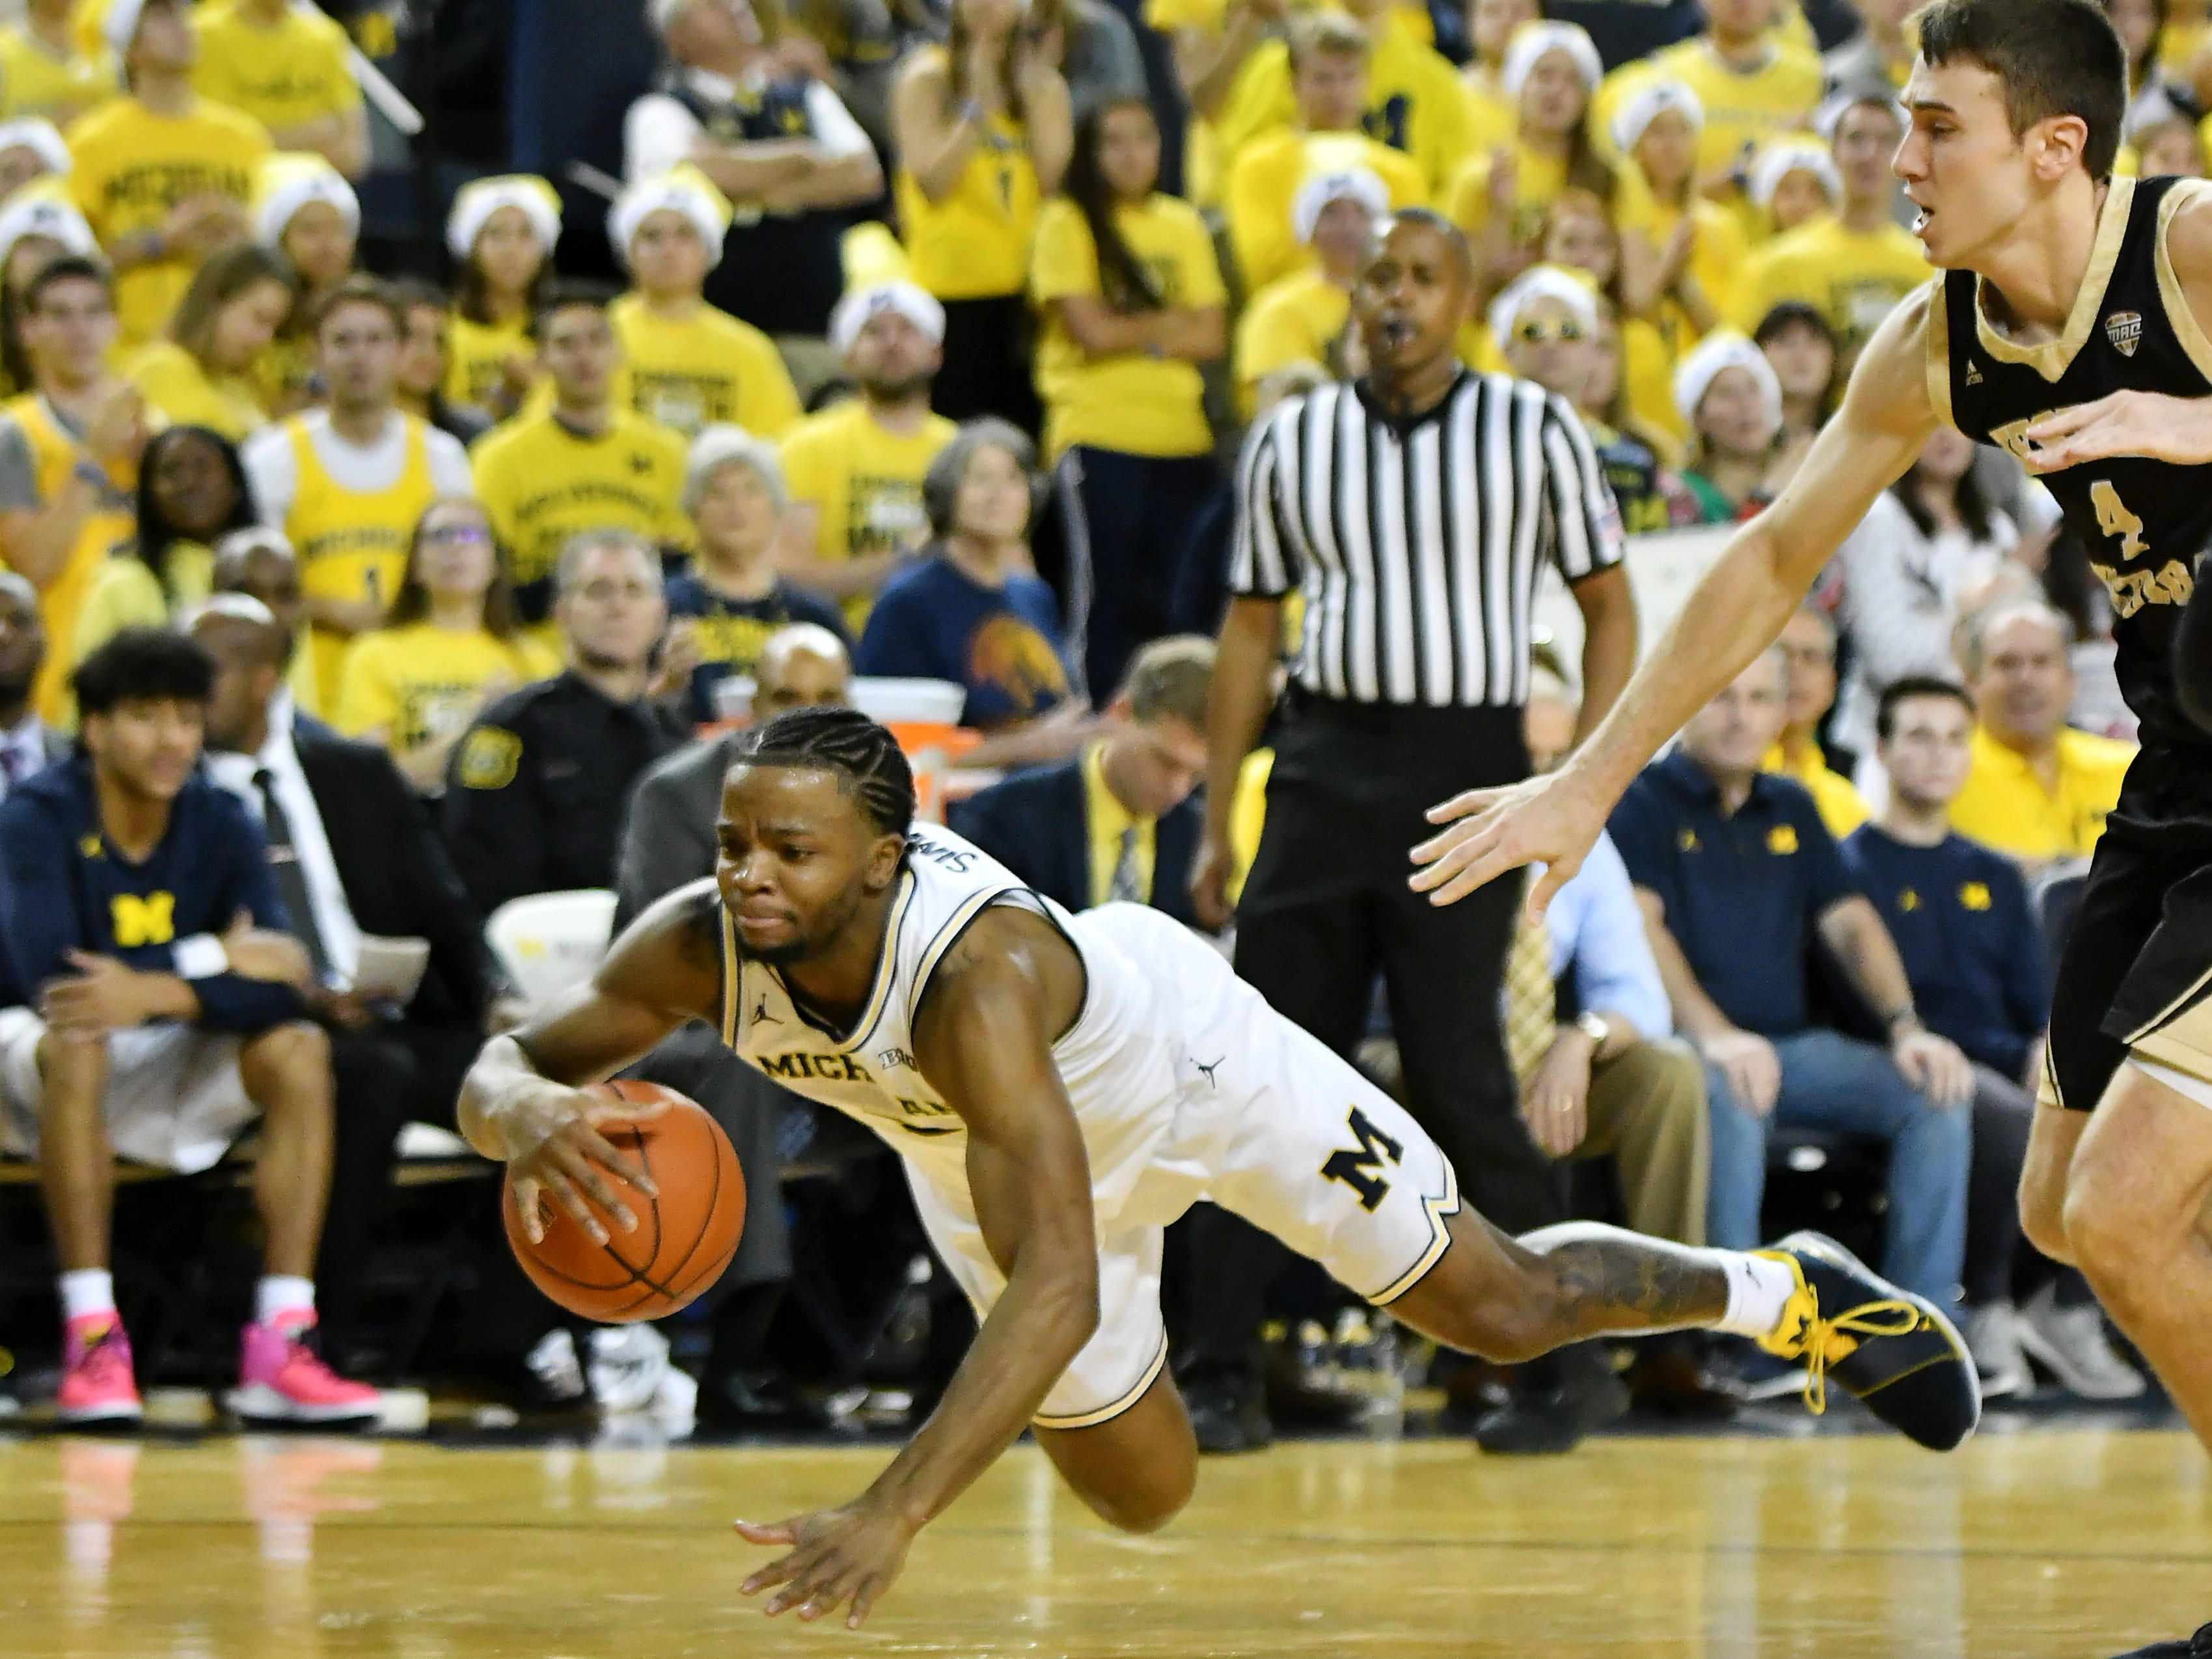 Michigan guard Zavier Simpson (3) goes for a loose ball in front of Western Michigan guard Jared Printy (4) in the second half.